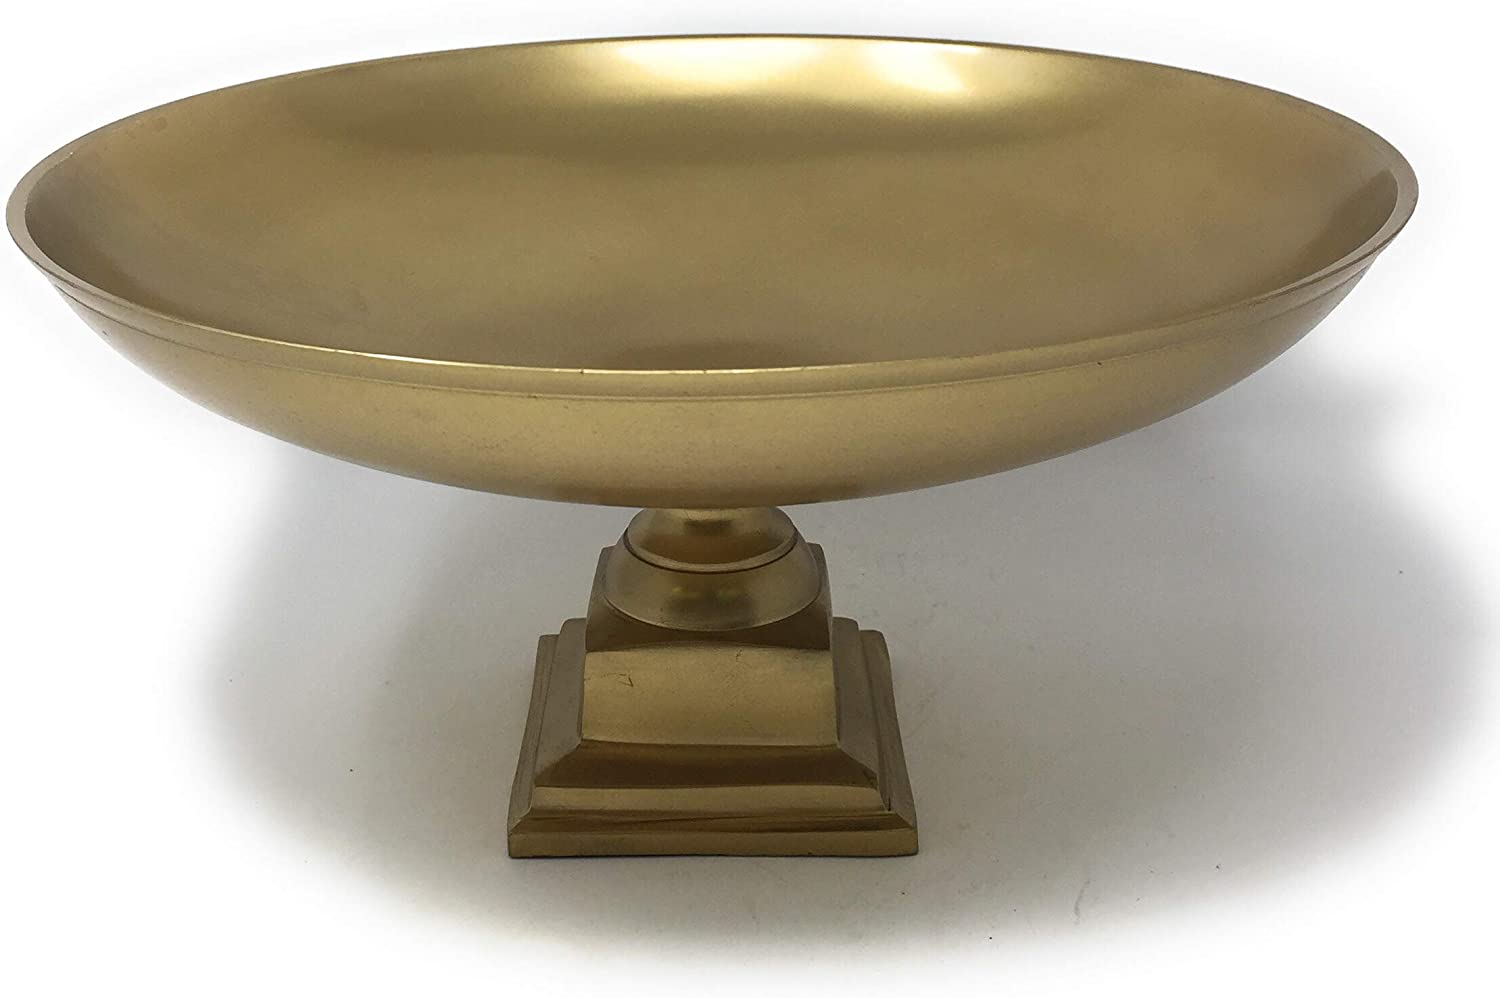 "Serene Spaces Living Gold Pedestal Bowl - Add Fruit or Treats for a Table Centerpiece with Rich Gold Color, Ideal for Home Decor, Weddings, Parties, Events, Measures 10.75"" Diameter &5.75"" Tall"